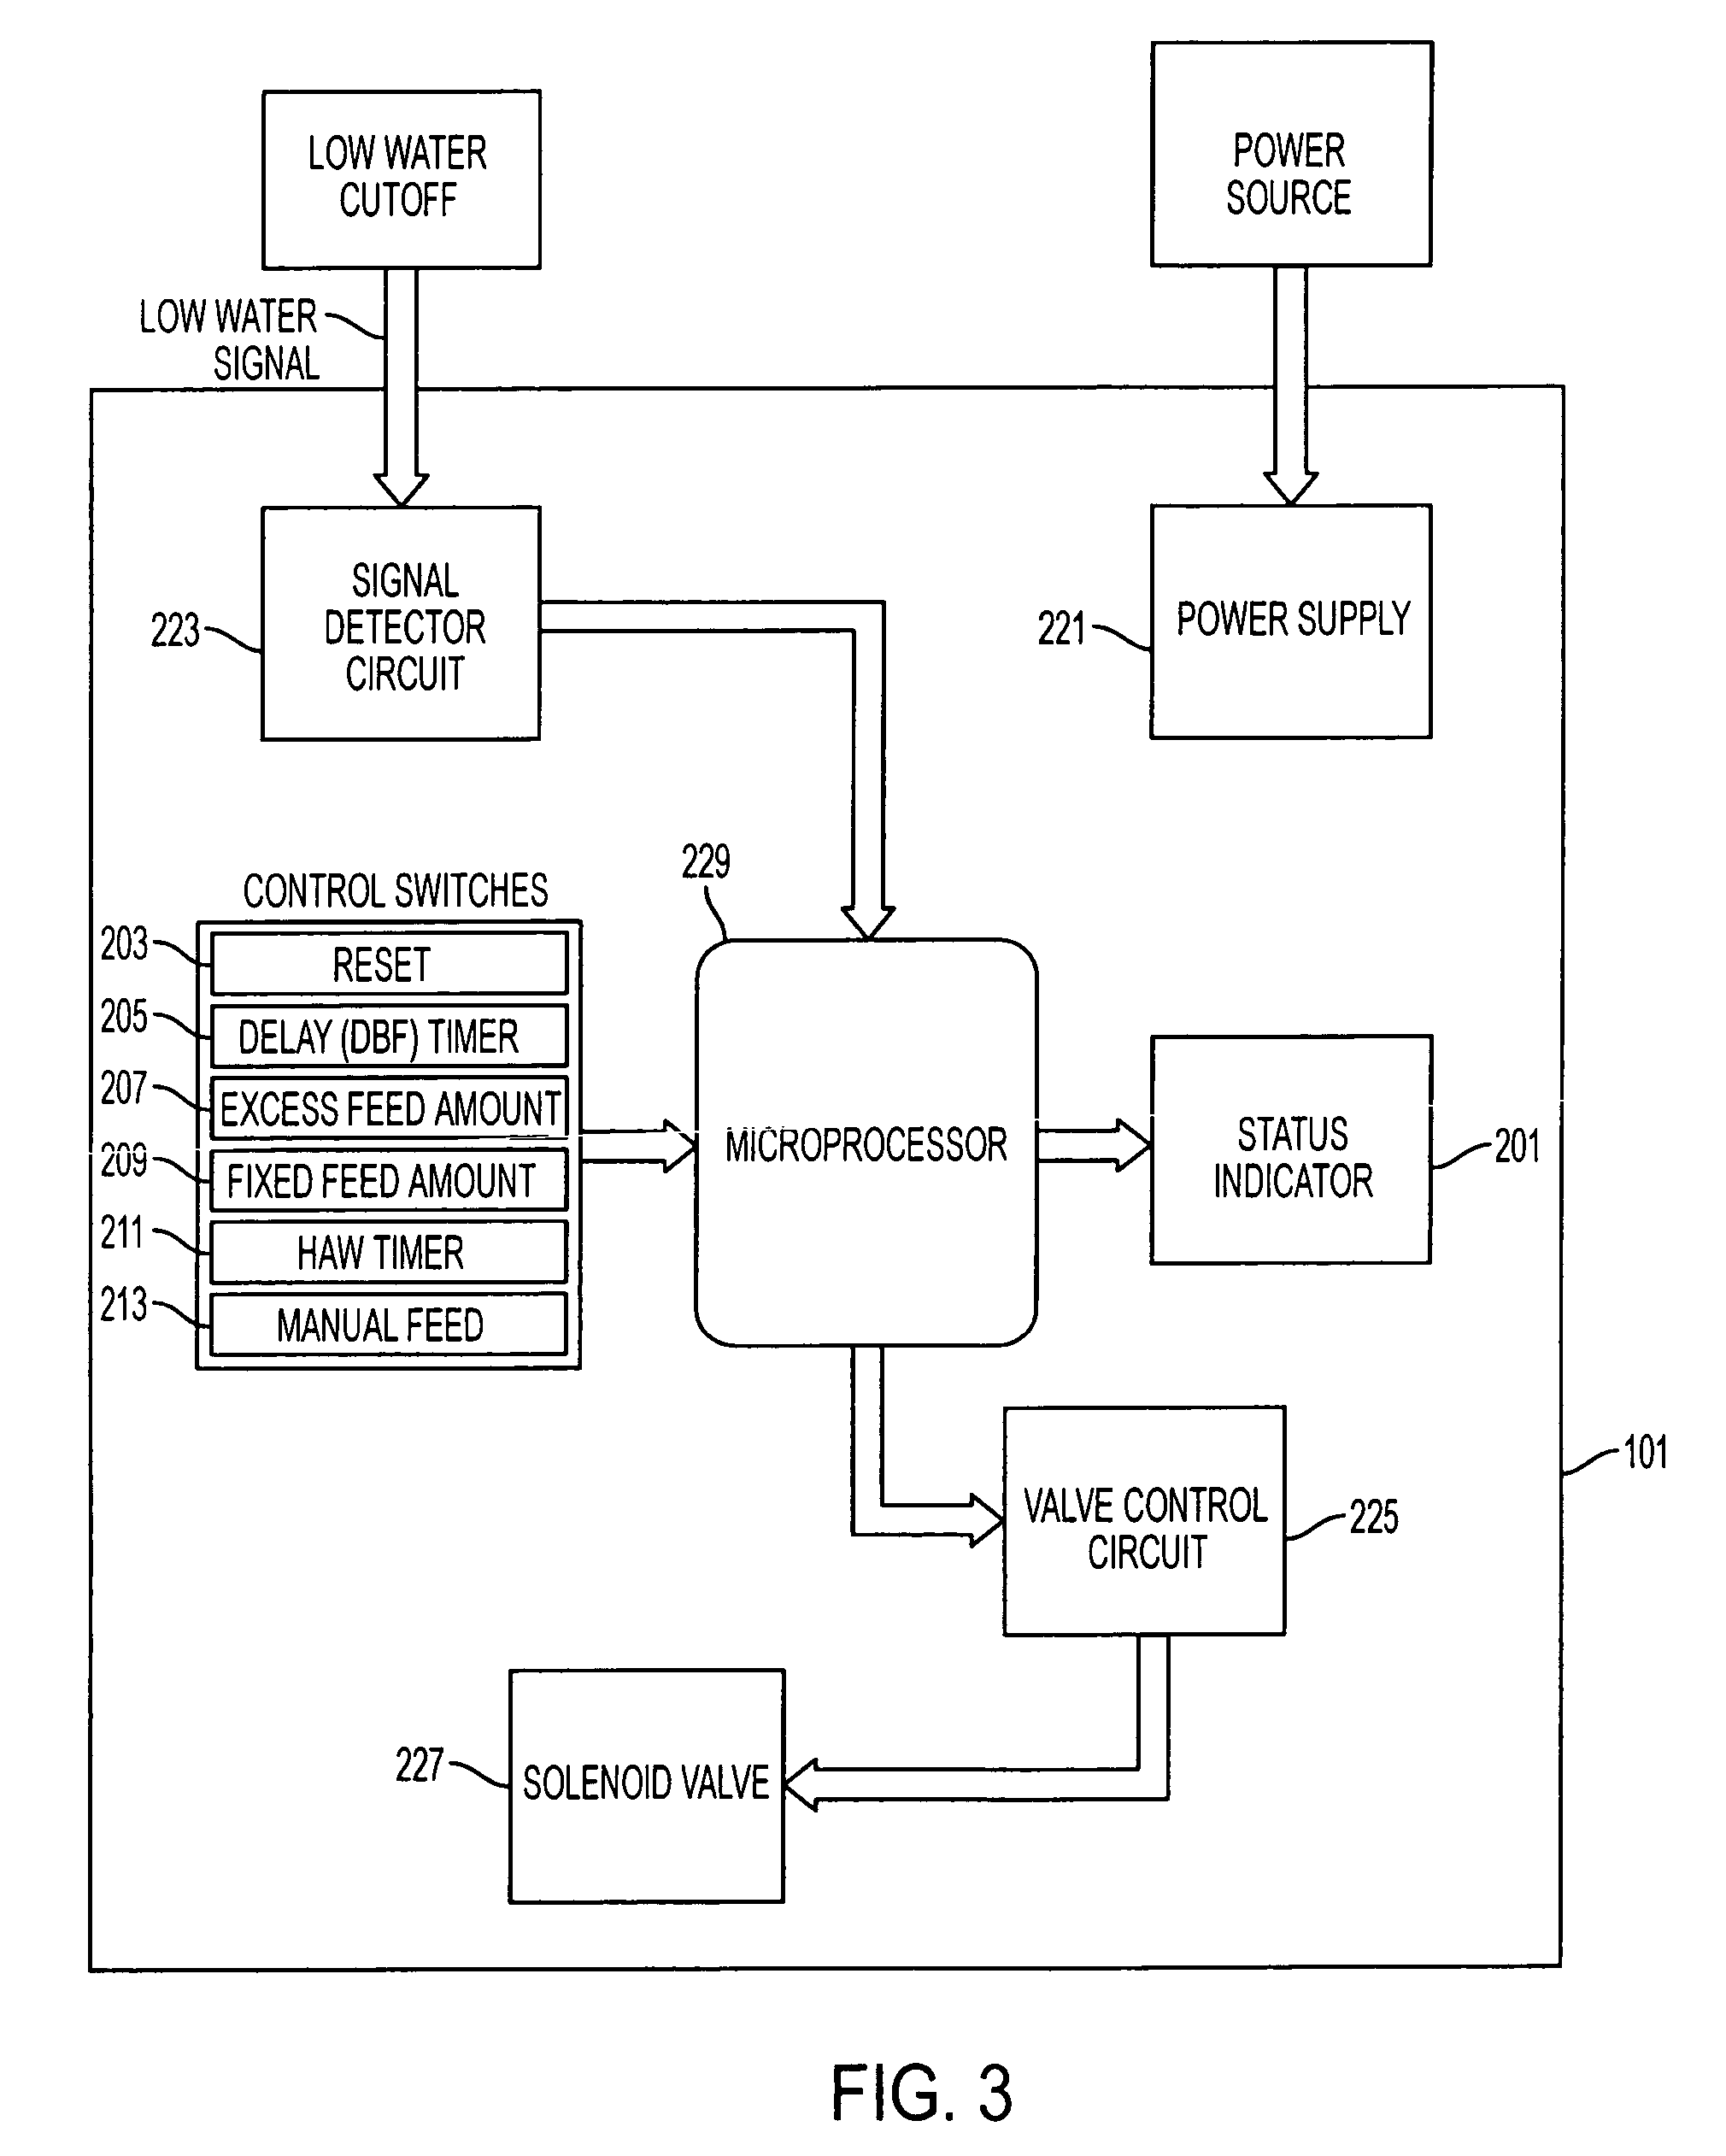 Low Water Cutoff Wiring Diagram 31 Images Utica Us07992527 20110809 D00003 Patent Us7992527 Feed Controller For A Boiler Google Patents Cut